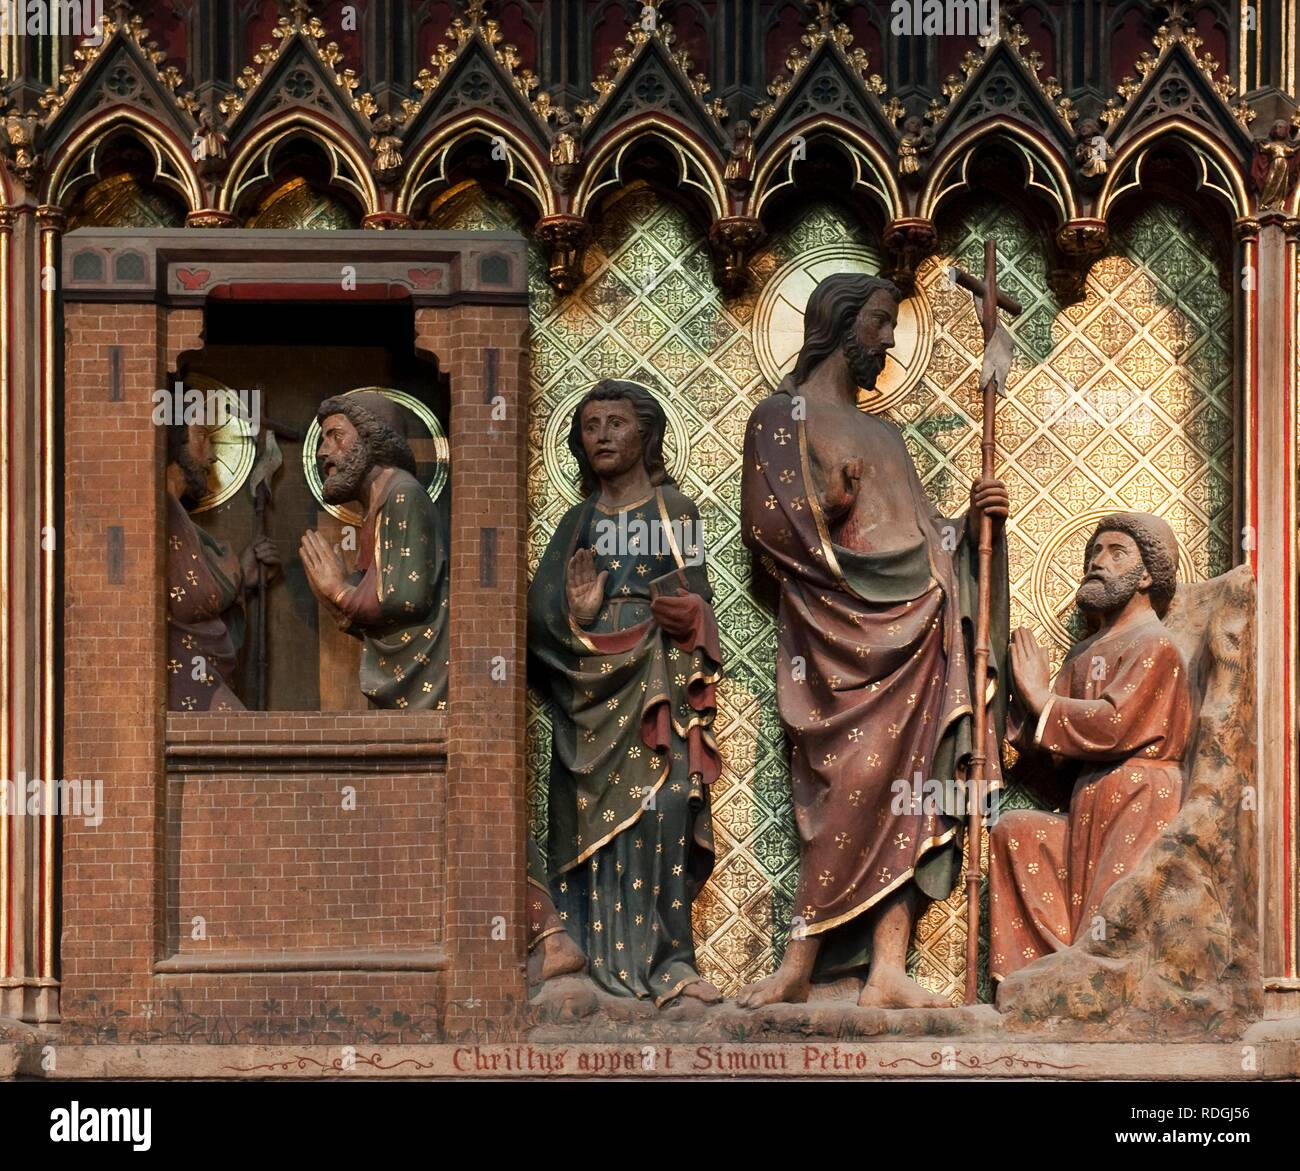 Scene of the life of the Christ, the risen Christ appears to Peter and John, Notre Dame de Paris cathedral, Paris, France - Stock Image